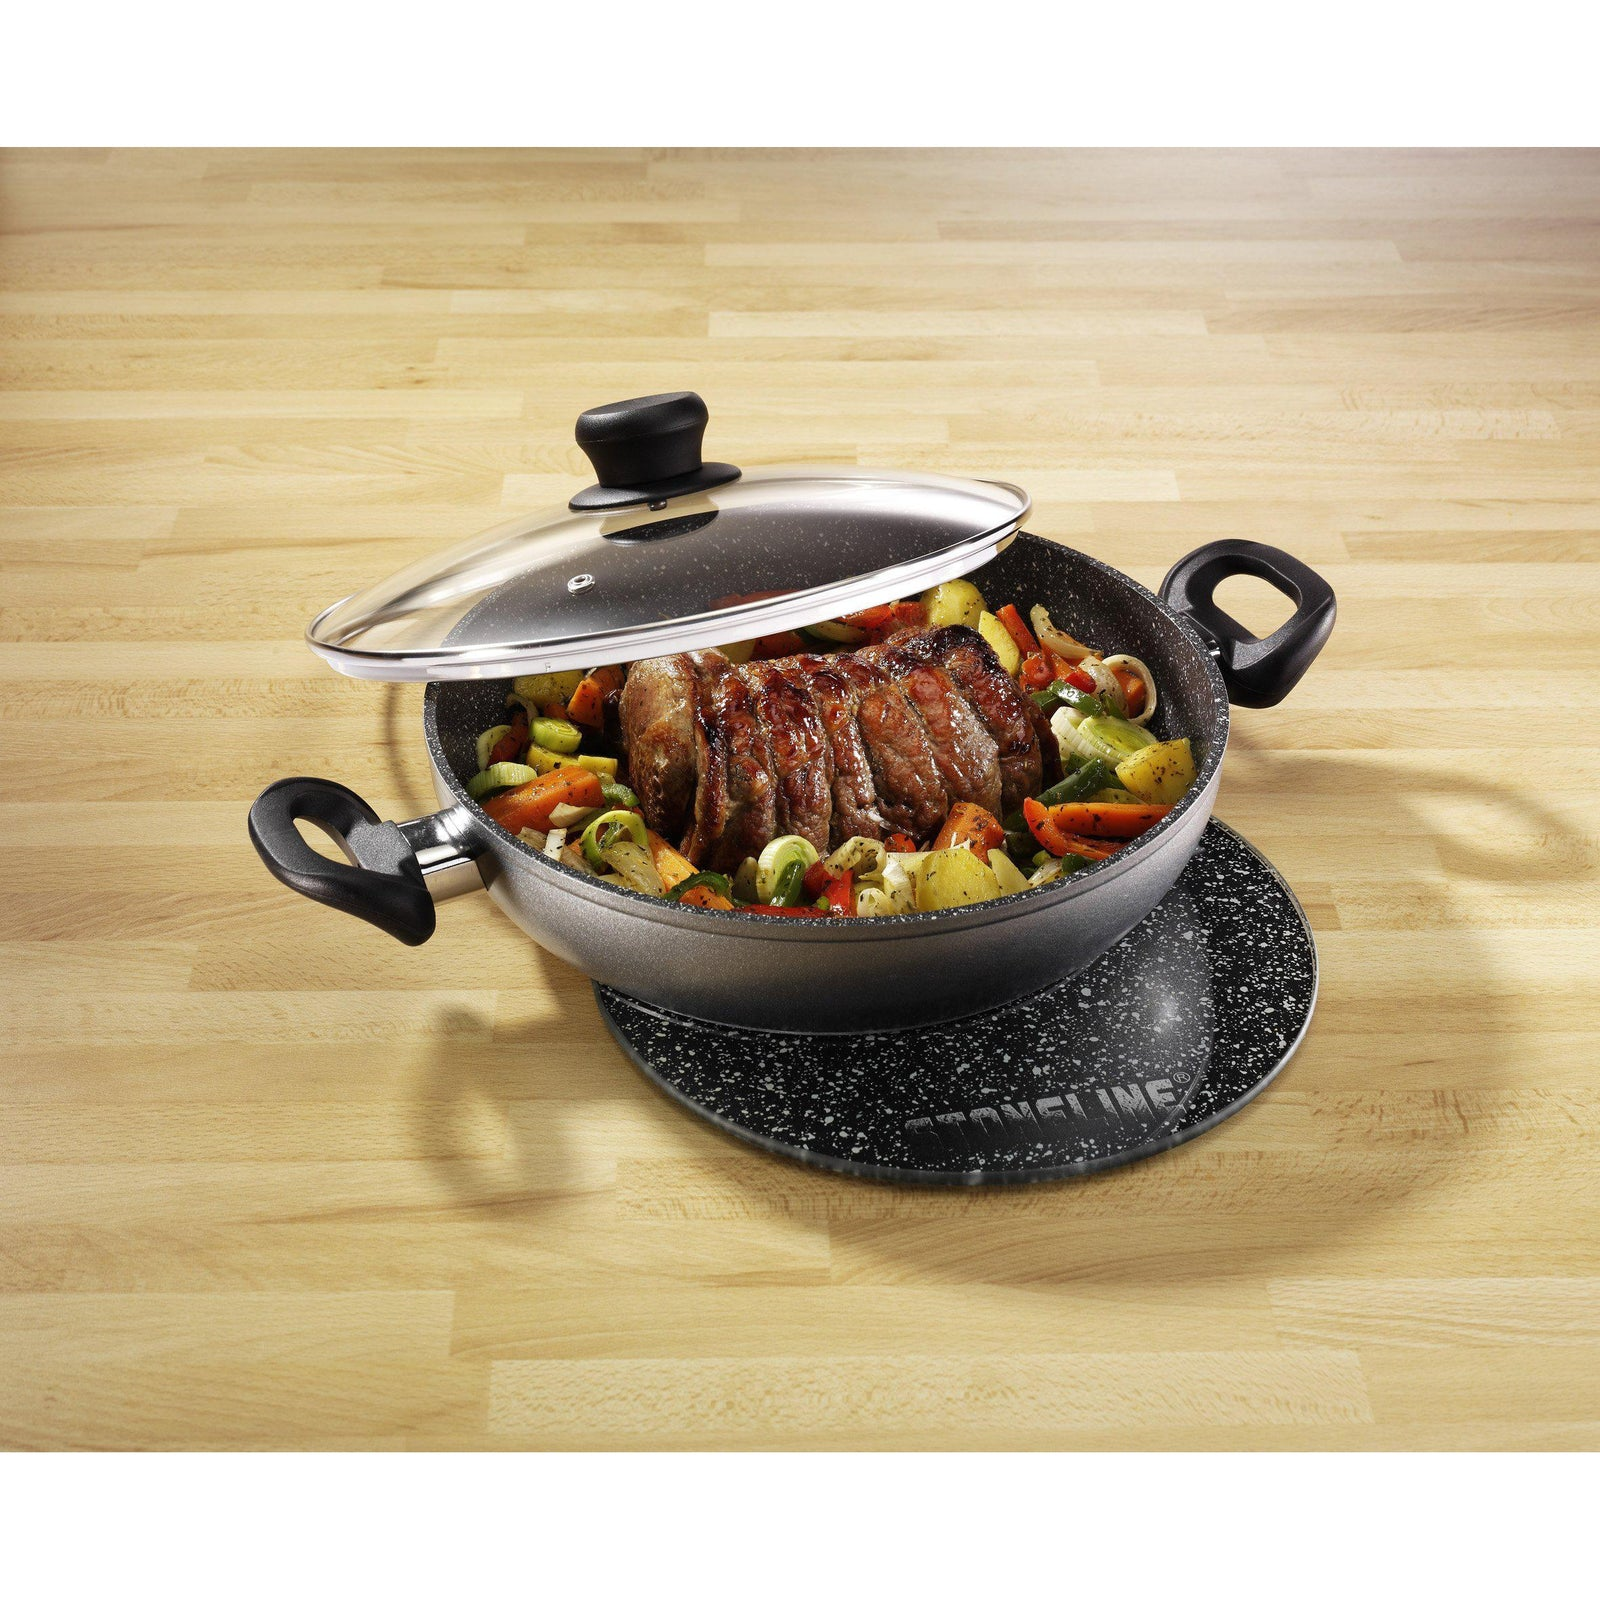 Stoneline® 28cm Serving Pan - portable heater